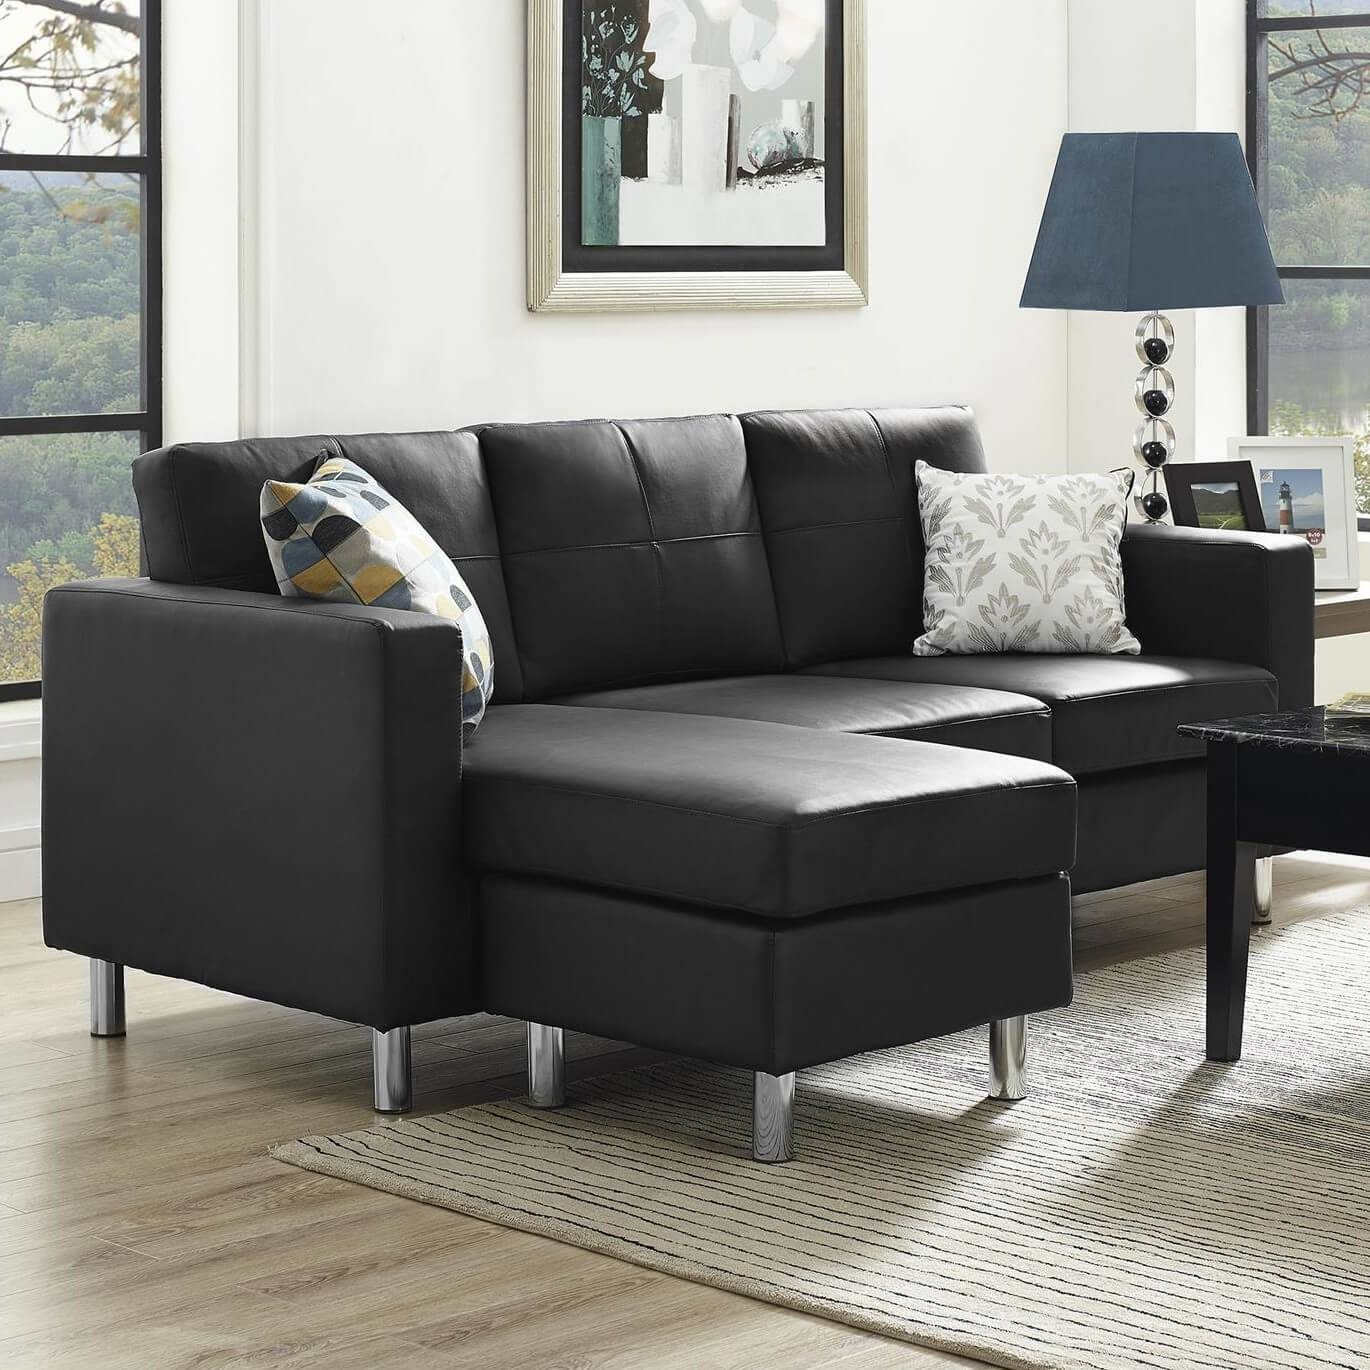 Way Black Modern Sectional Sofa High Quality Sets Extraordinary intended for Black Modern Couches (Image 15 of 15)